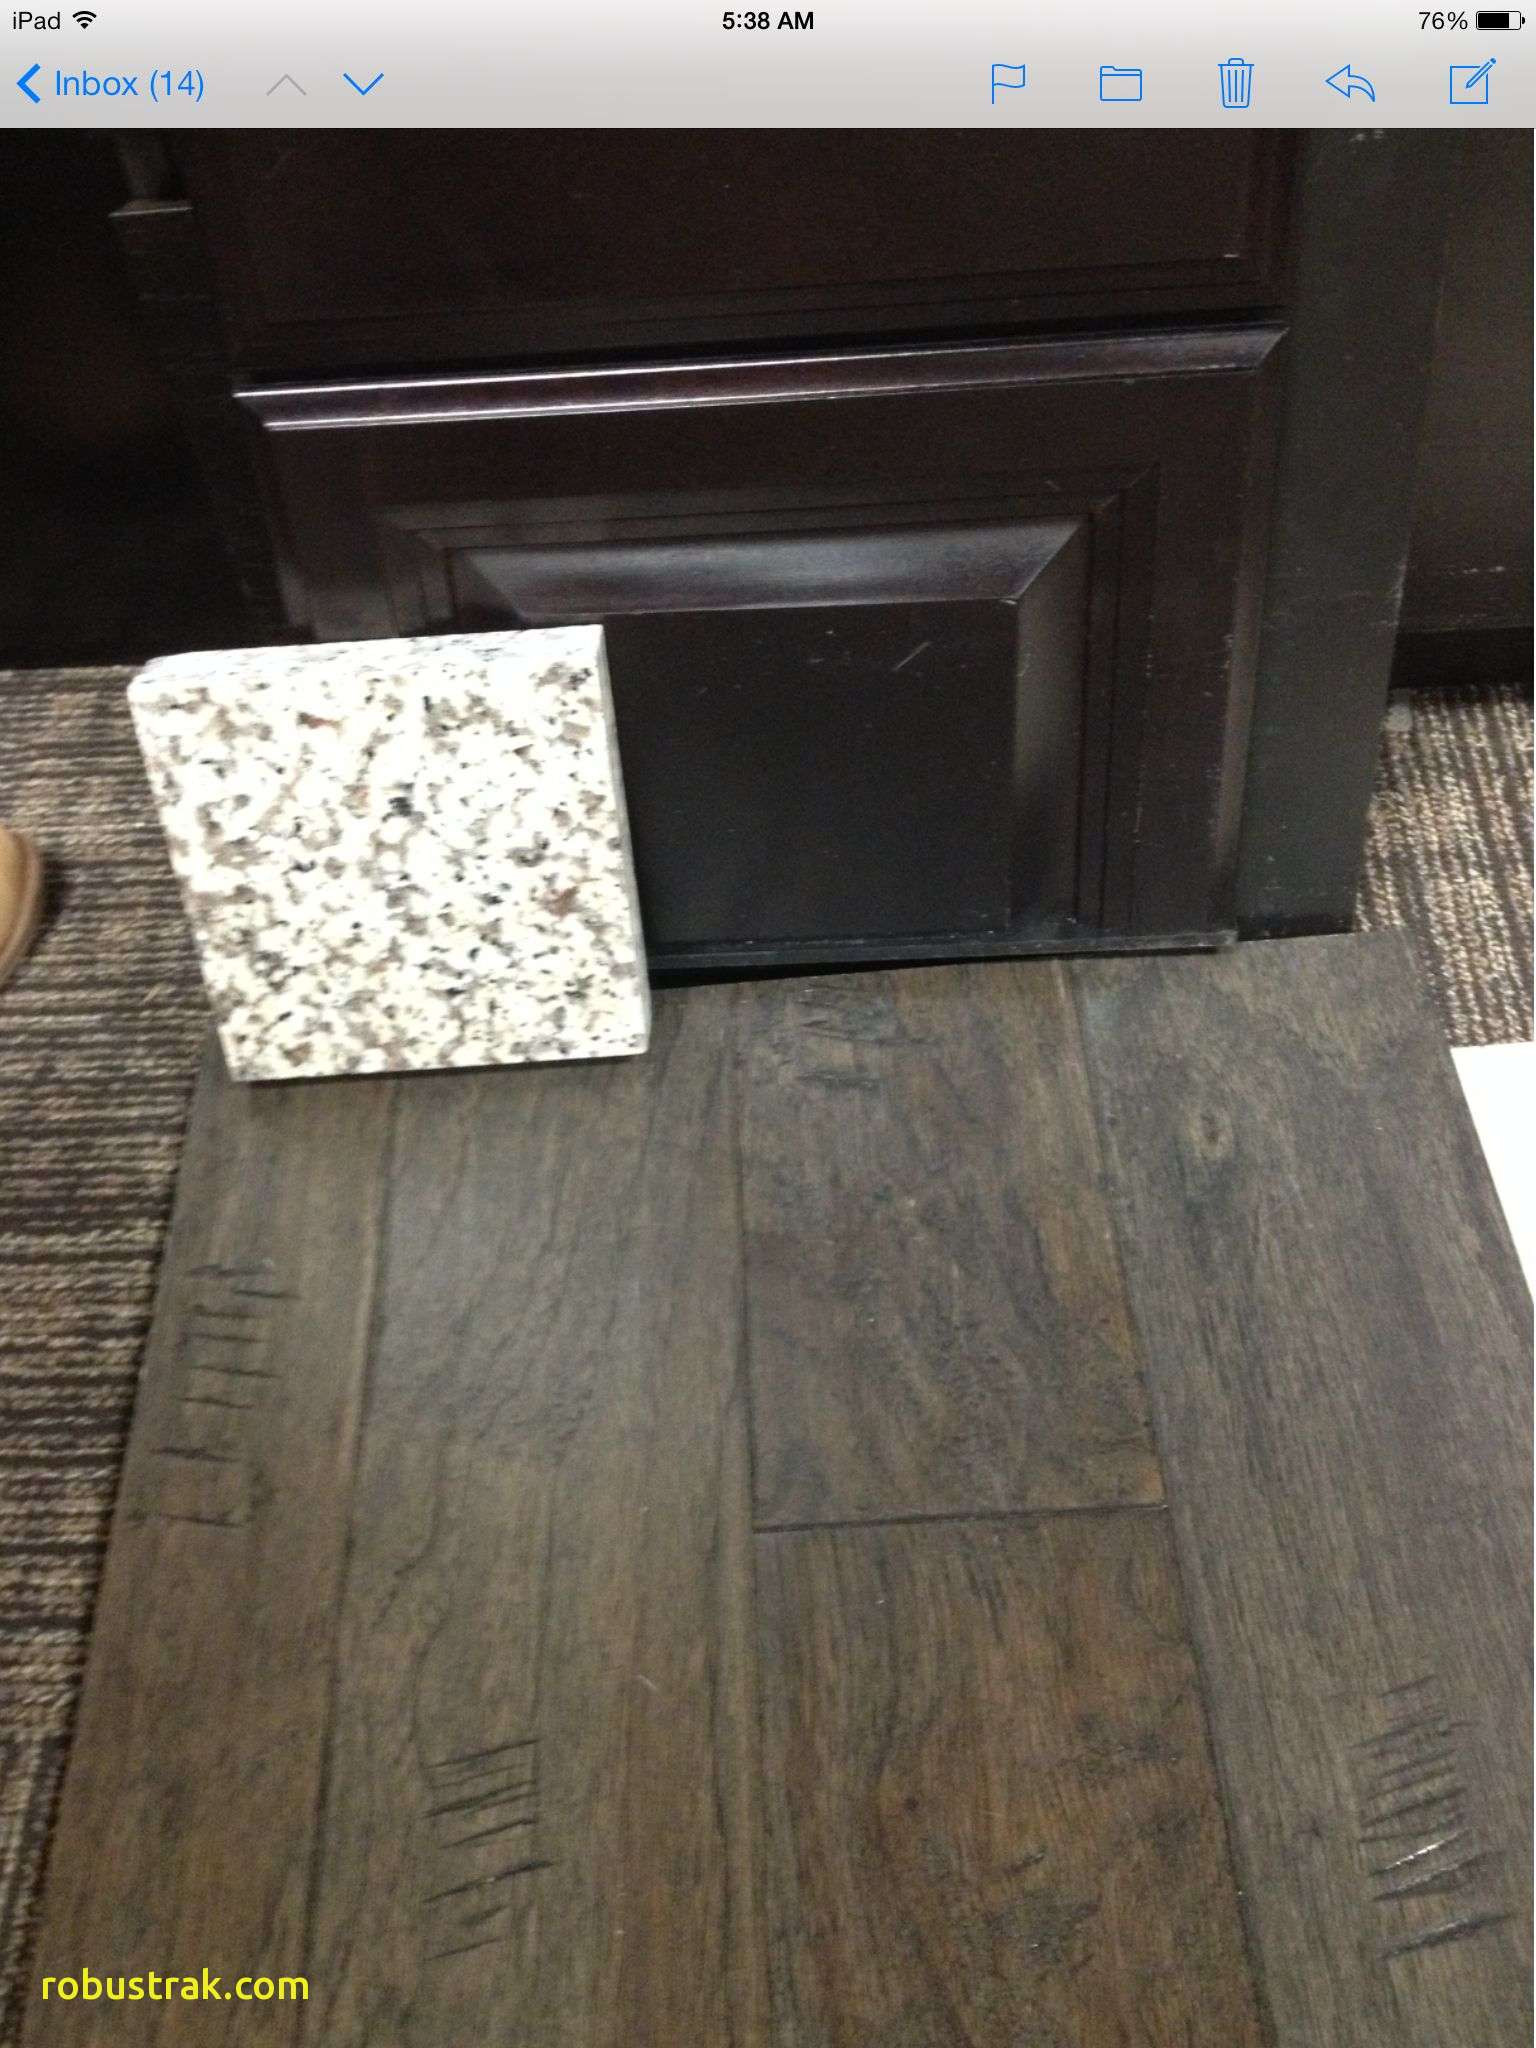 19 Nice Hardwood Floor Stain Ideas 2021 free download hardwood floor stain ideas of awesome what color is espresso wood home design ideas inside kitchen colors ac2b7 maple espresso cabinets armstrong 5 engineered wood floor in misty gray crema